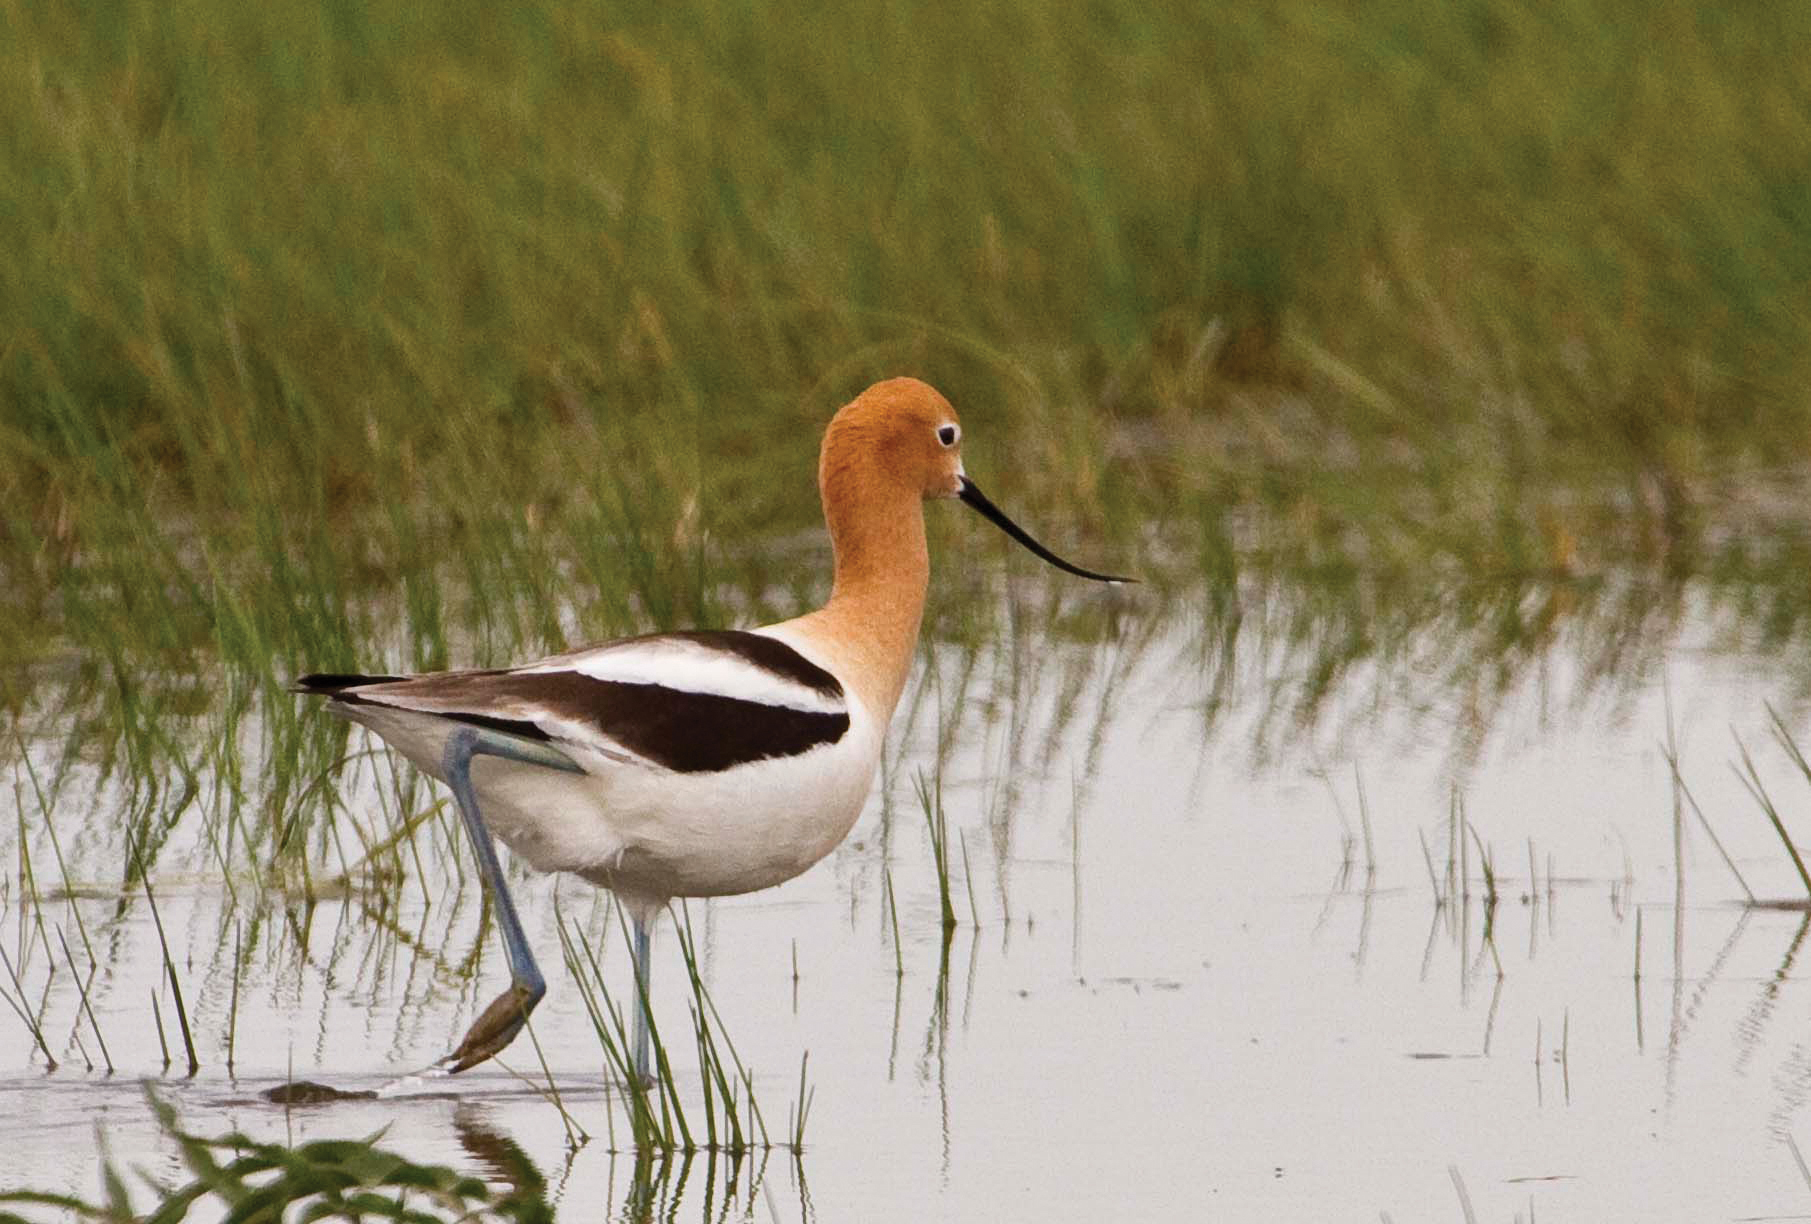 American avocet photographed by Dennis Lingohr